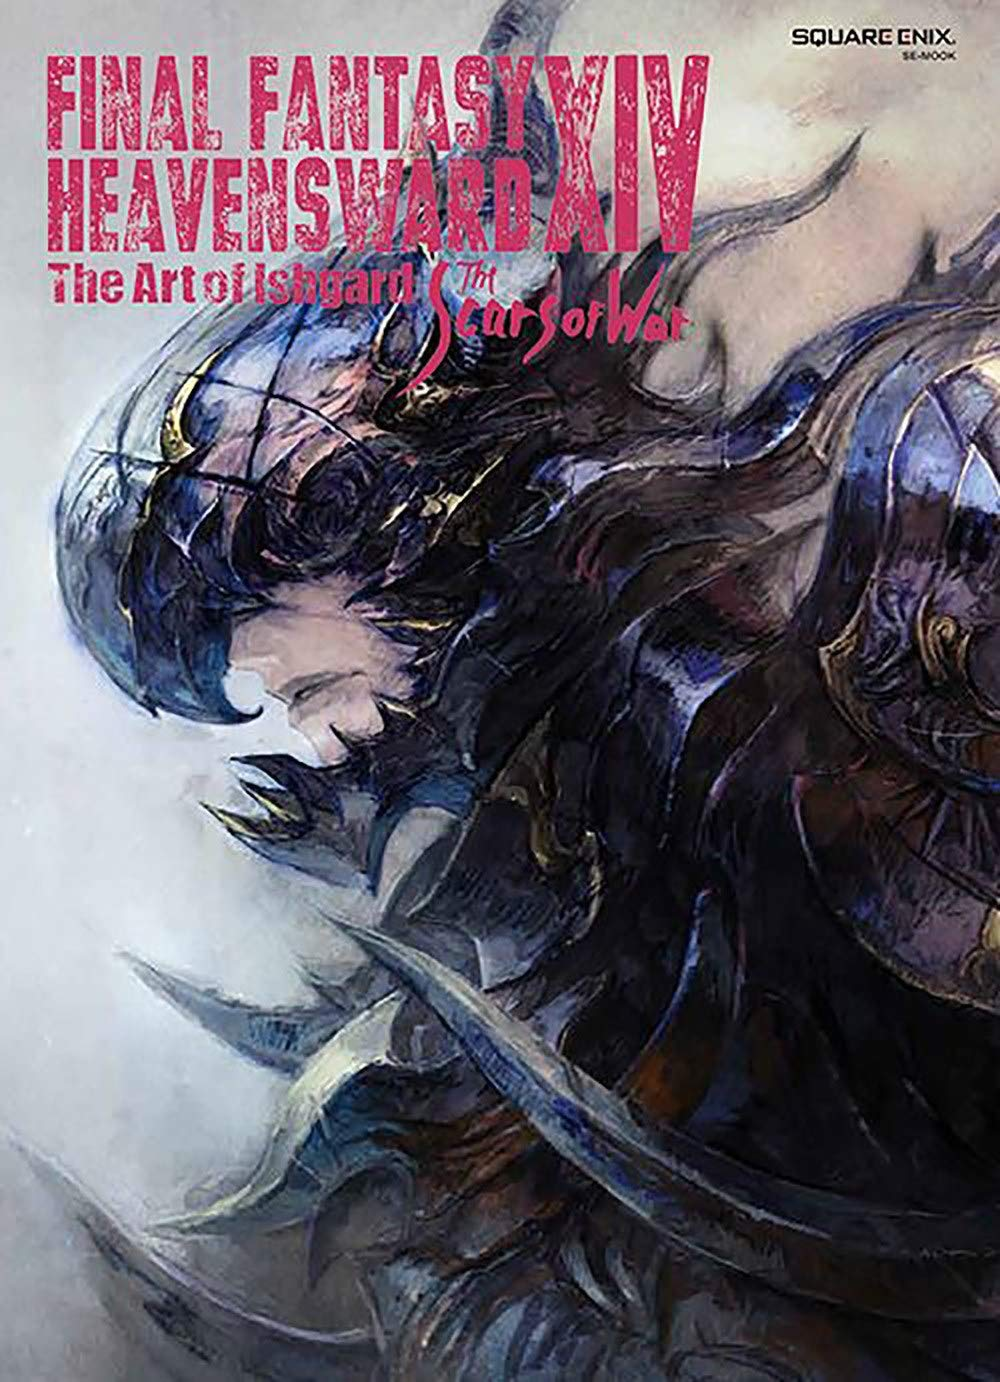 Final Fantasy XIV: Heavensward — The Art of Ishgard -The Scars of War-